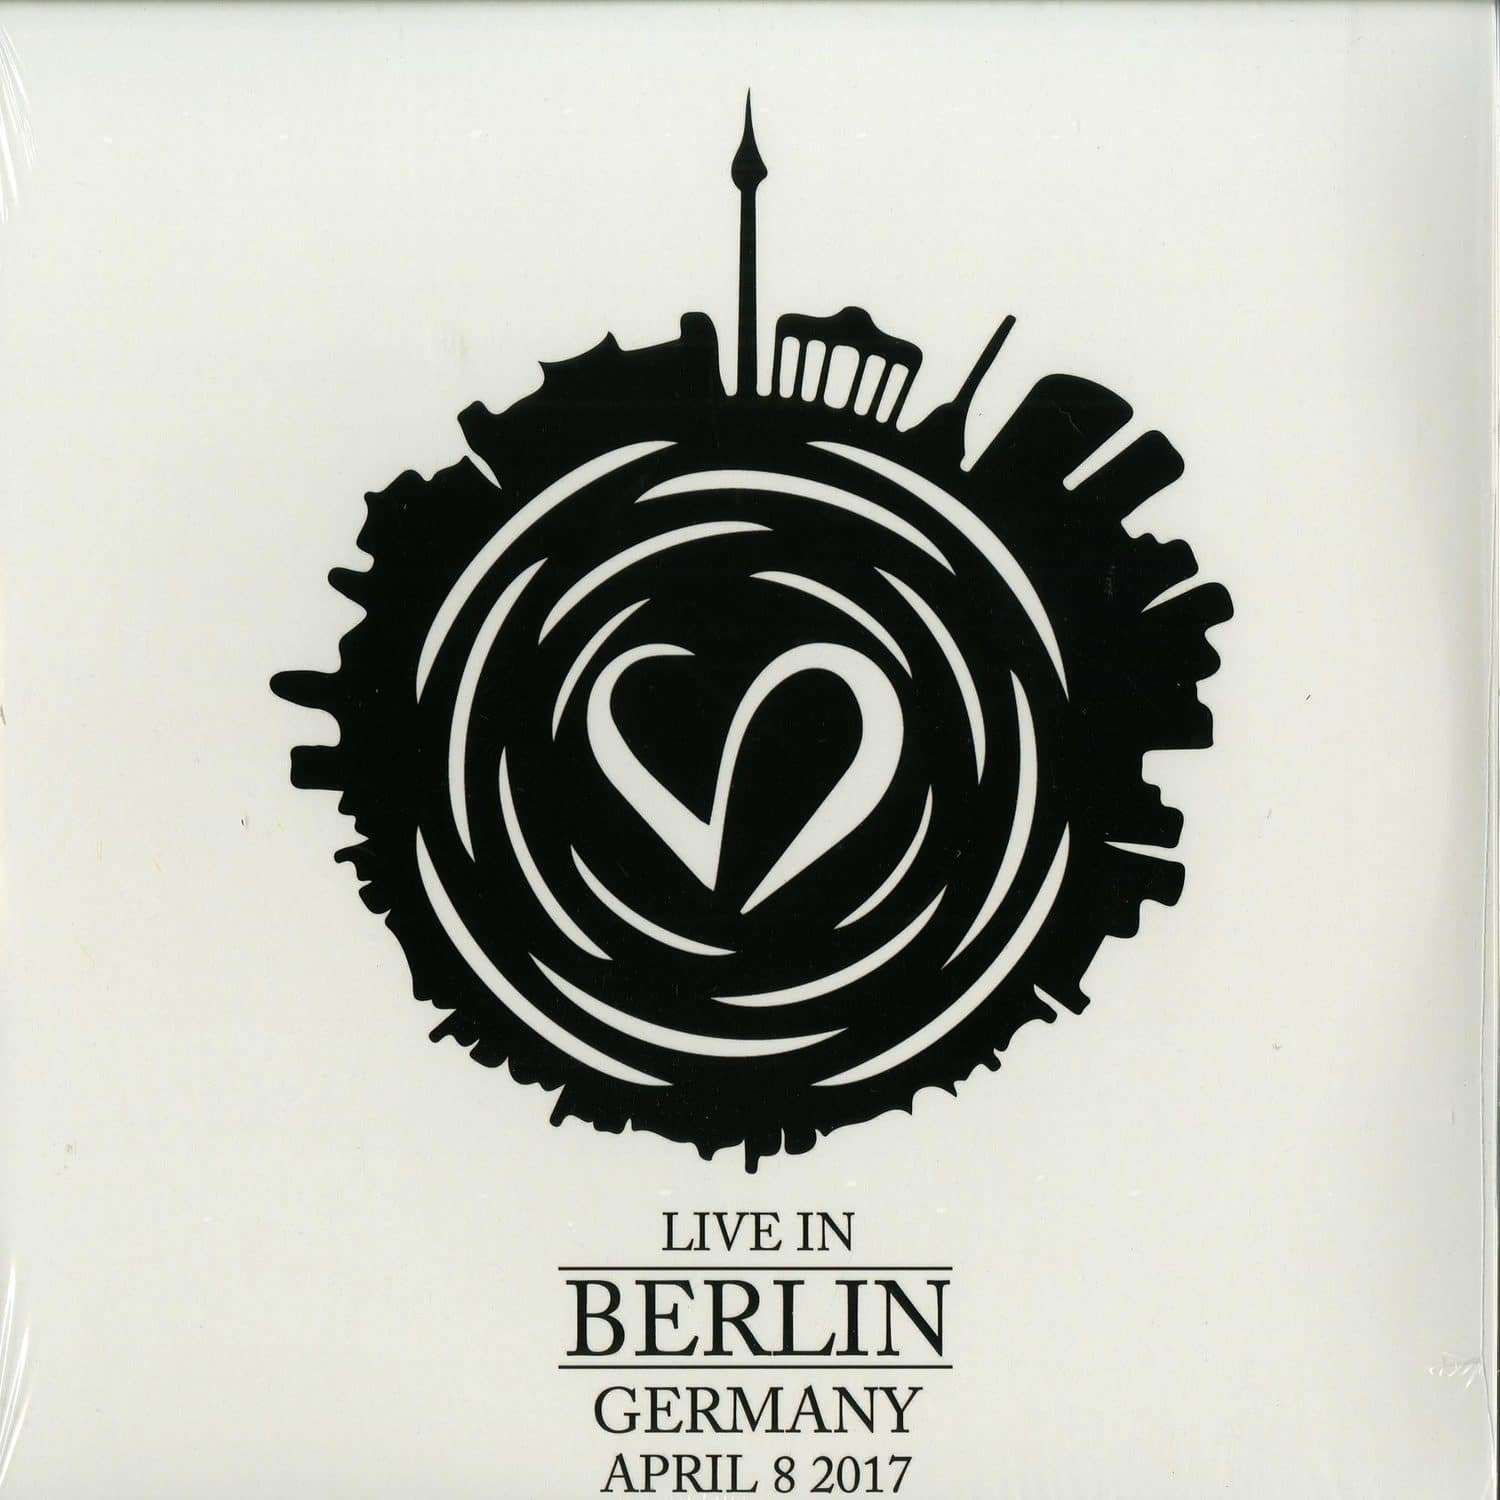 Enrico Mantini - LIVE IN BERLIN